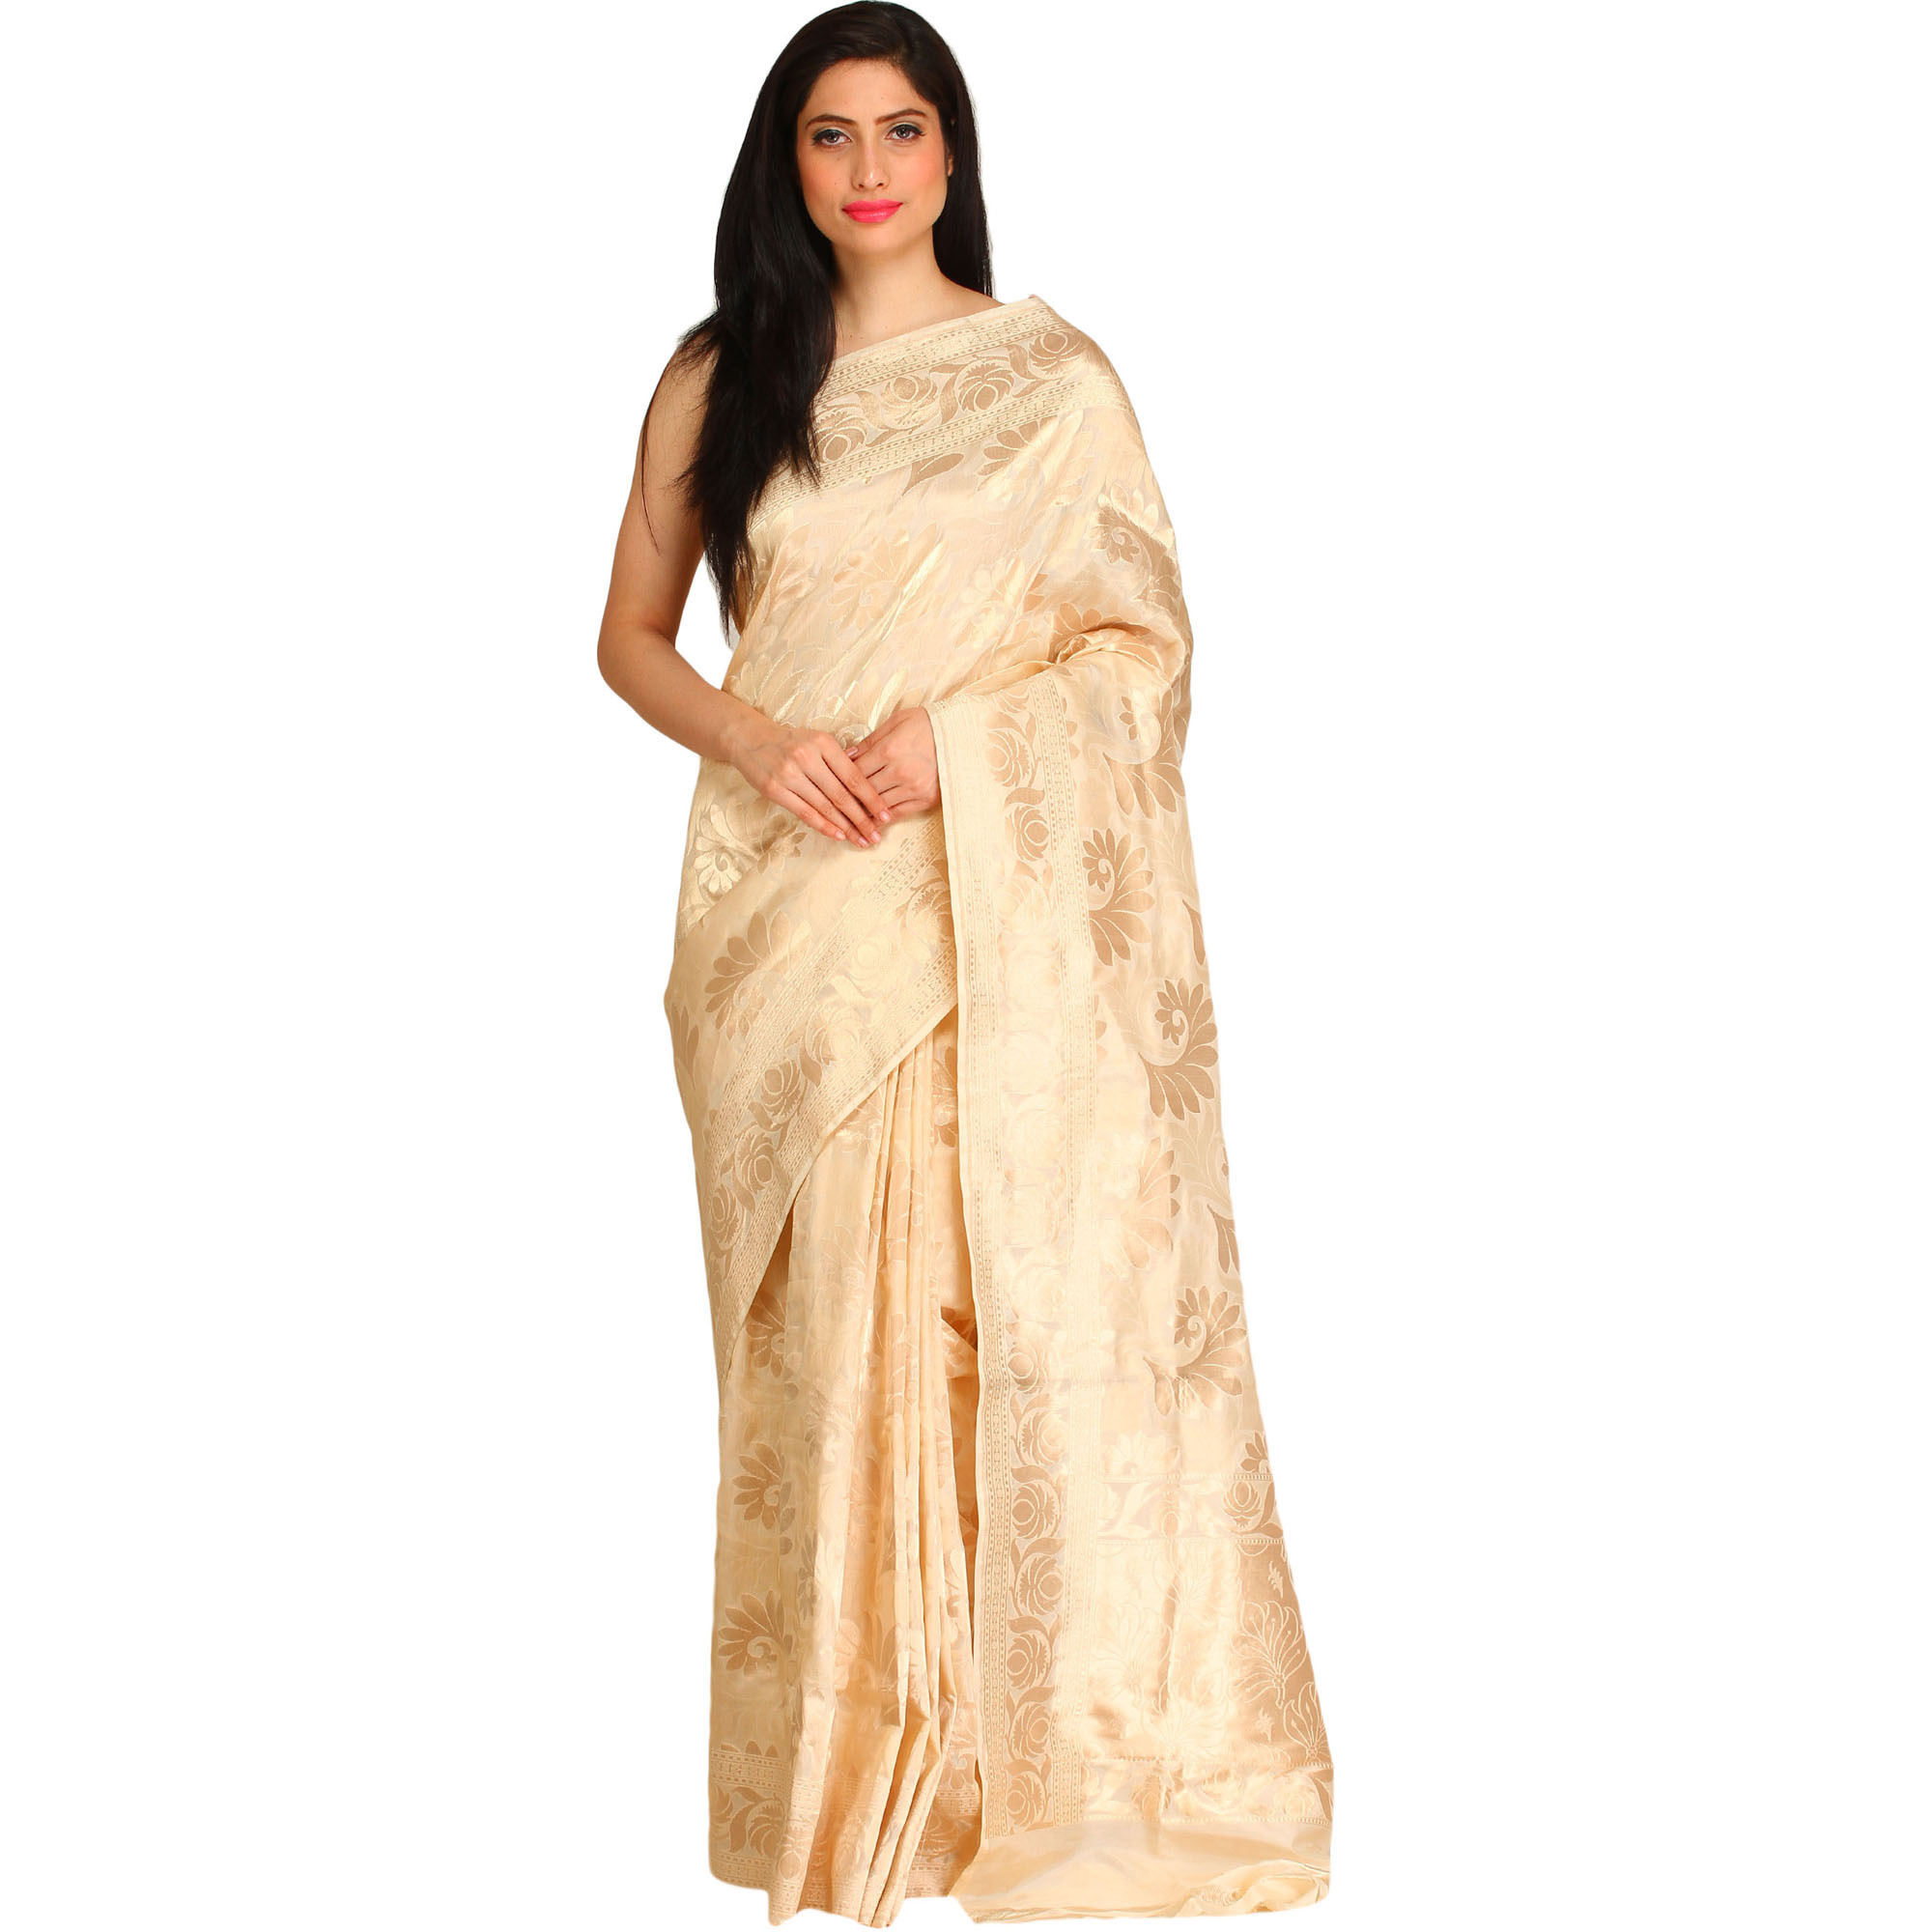 Pearled-Ivory Wedding Sari from Banaras with Woven Golden Flowers All-Over